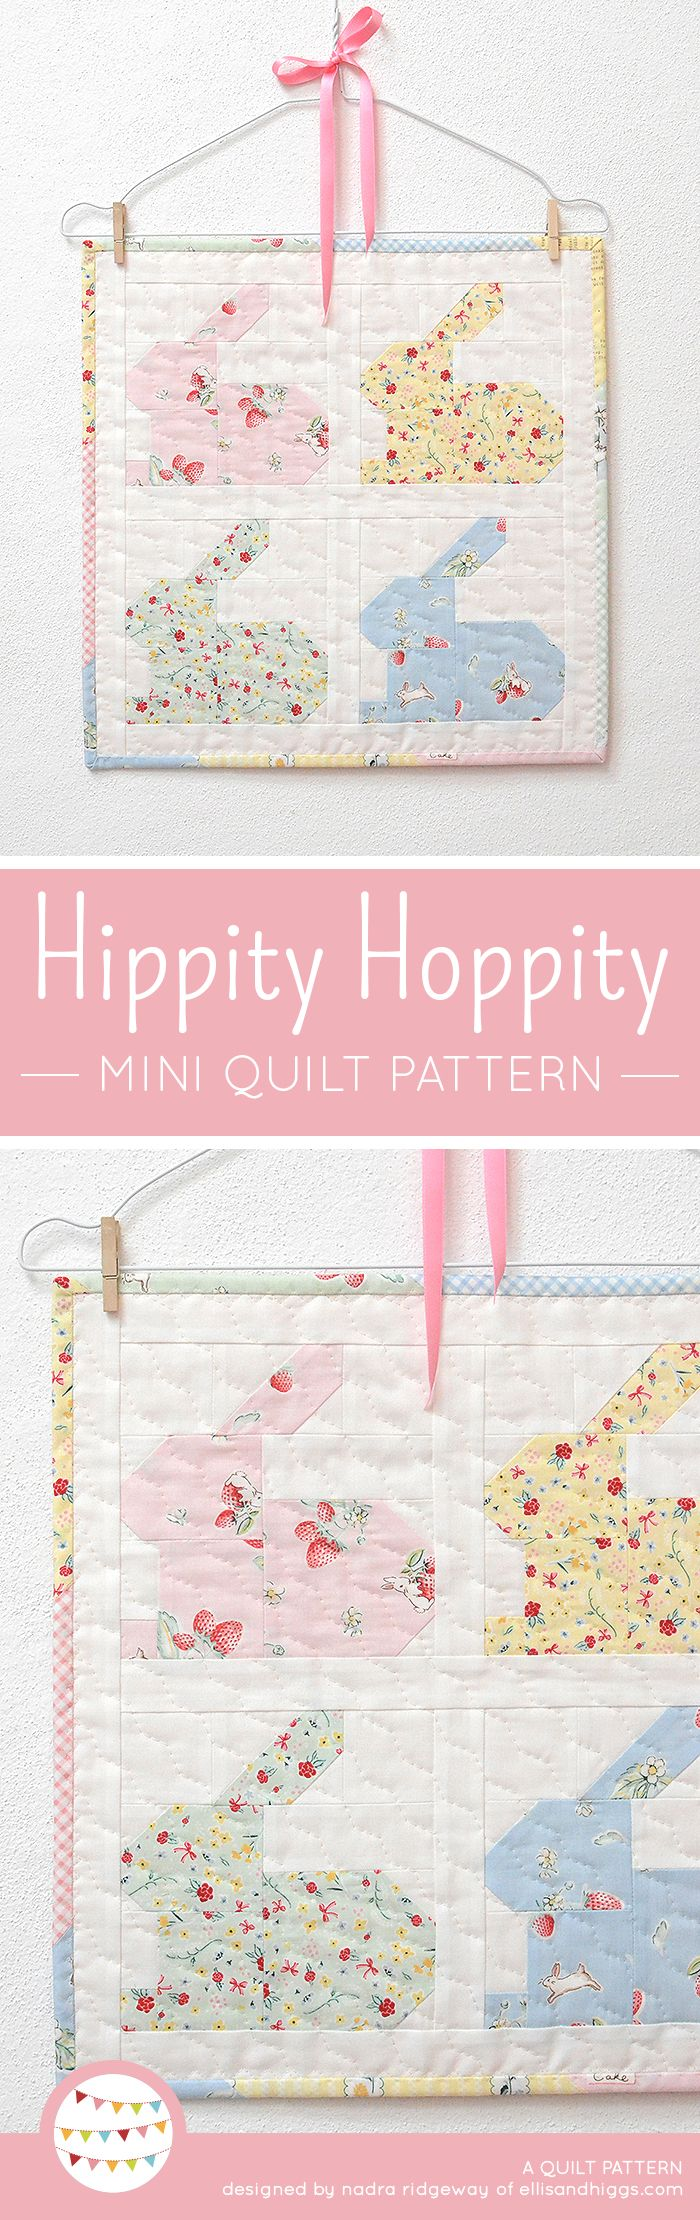 Hippity Hoppity Easter mini quilt pattern by Nadra Ridgeway of ellis & higgs. Patchwork pattern, easy quilt pattern, Easter quilt ideas, Easter crafts, Easter DIY craft project, bunny quilt block, pillow cushion. Patchwork Anleitung, Nähanleitung Patchworkdecke, Kissen, Wandbehand, Hase, Häschen, Oster Ideen, Geschenk, Patchwork Ideen, Oster Geschenke selber machen, Nähen für Ostern, DIY für Ostern.